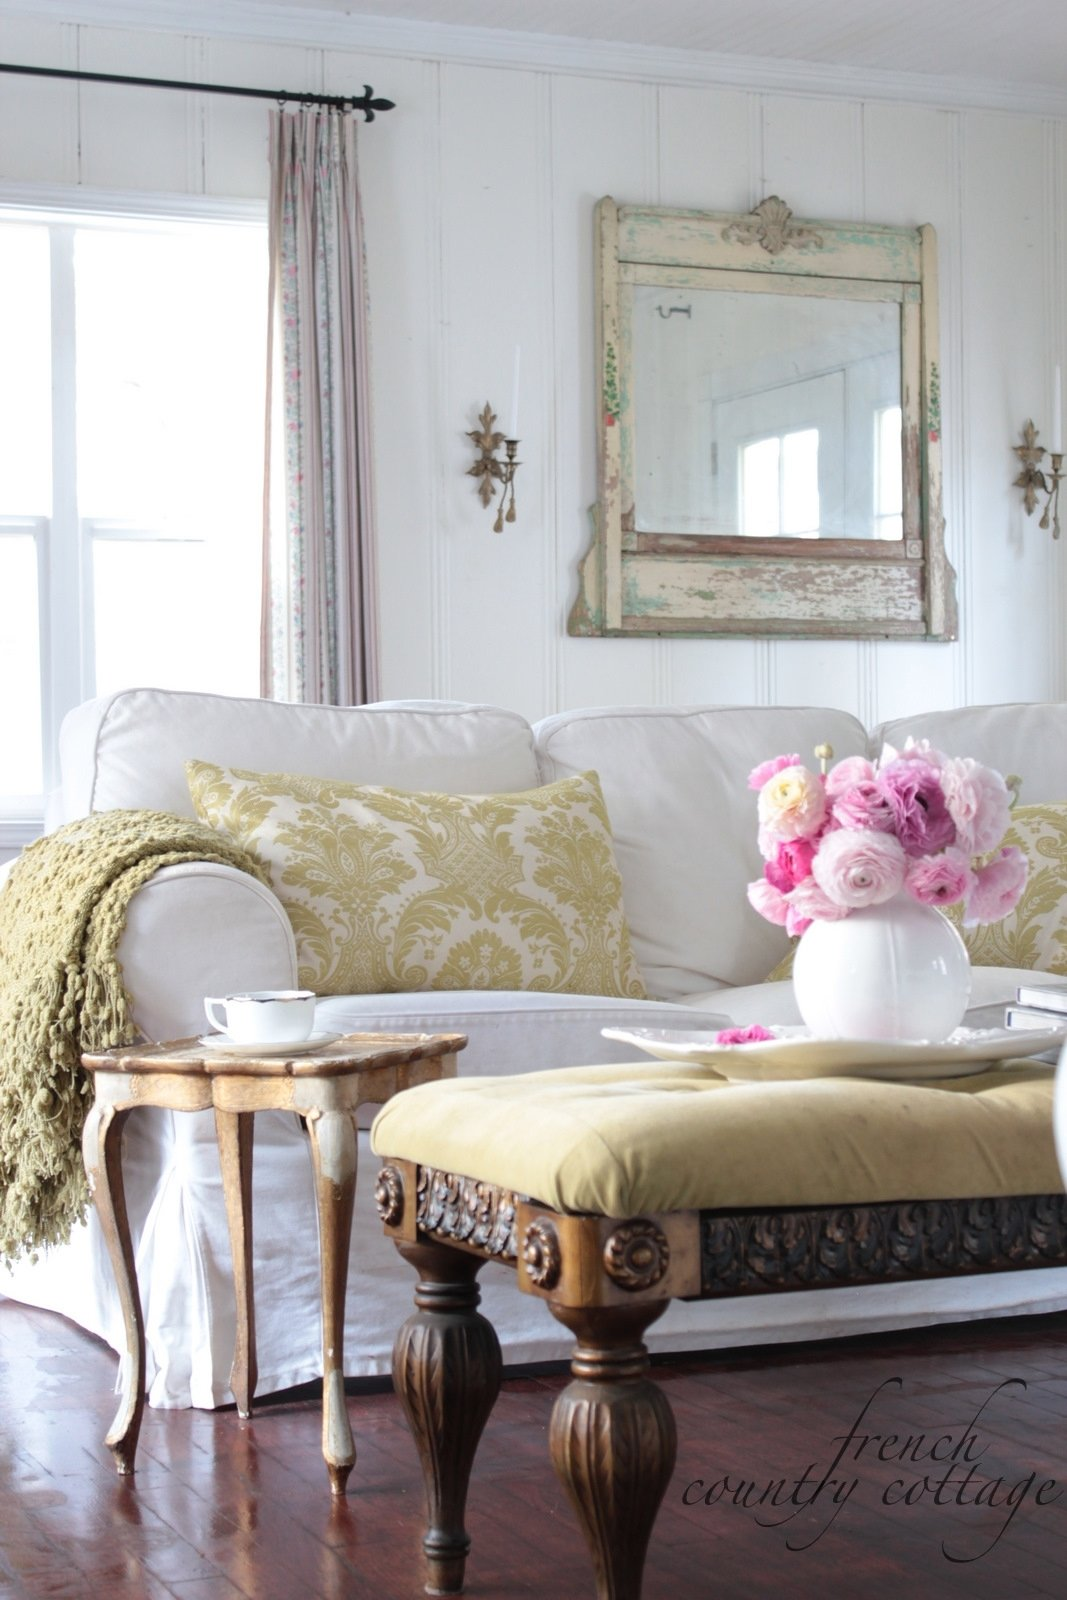 10 Pretty French Country Cottage Decorating Ideas cozy ideas french country cottage decor home designing 2020